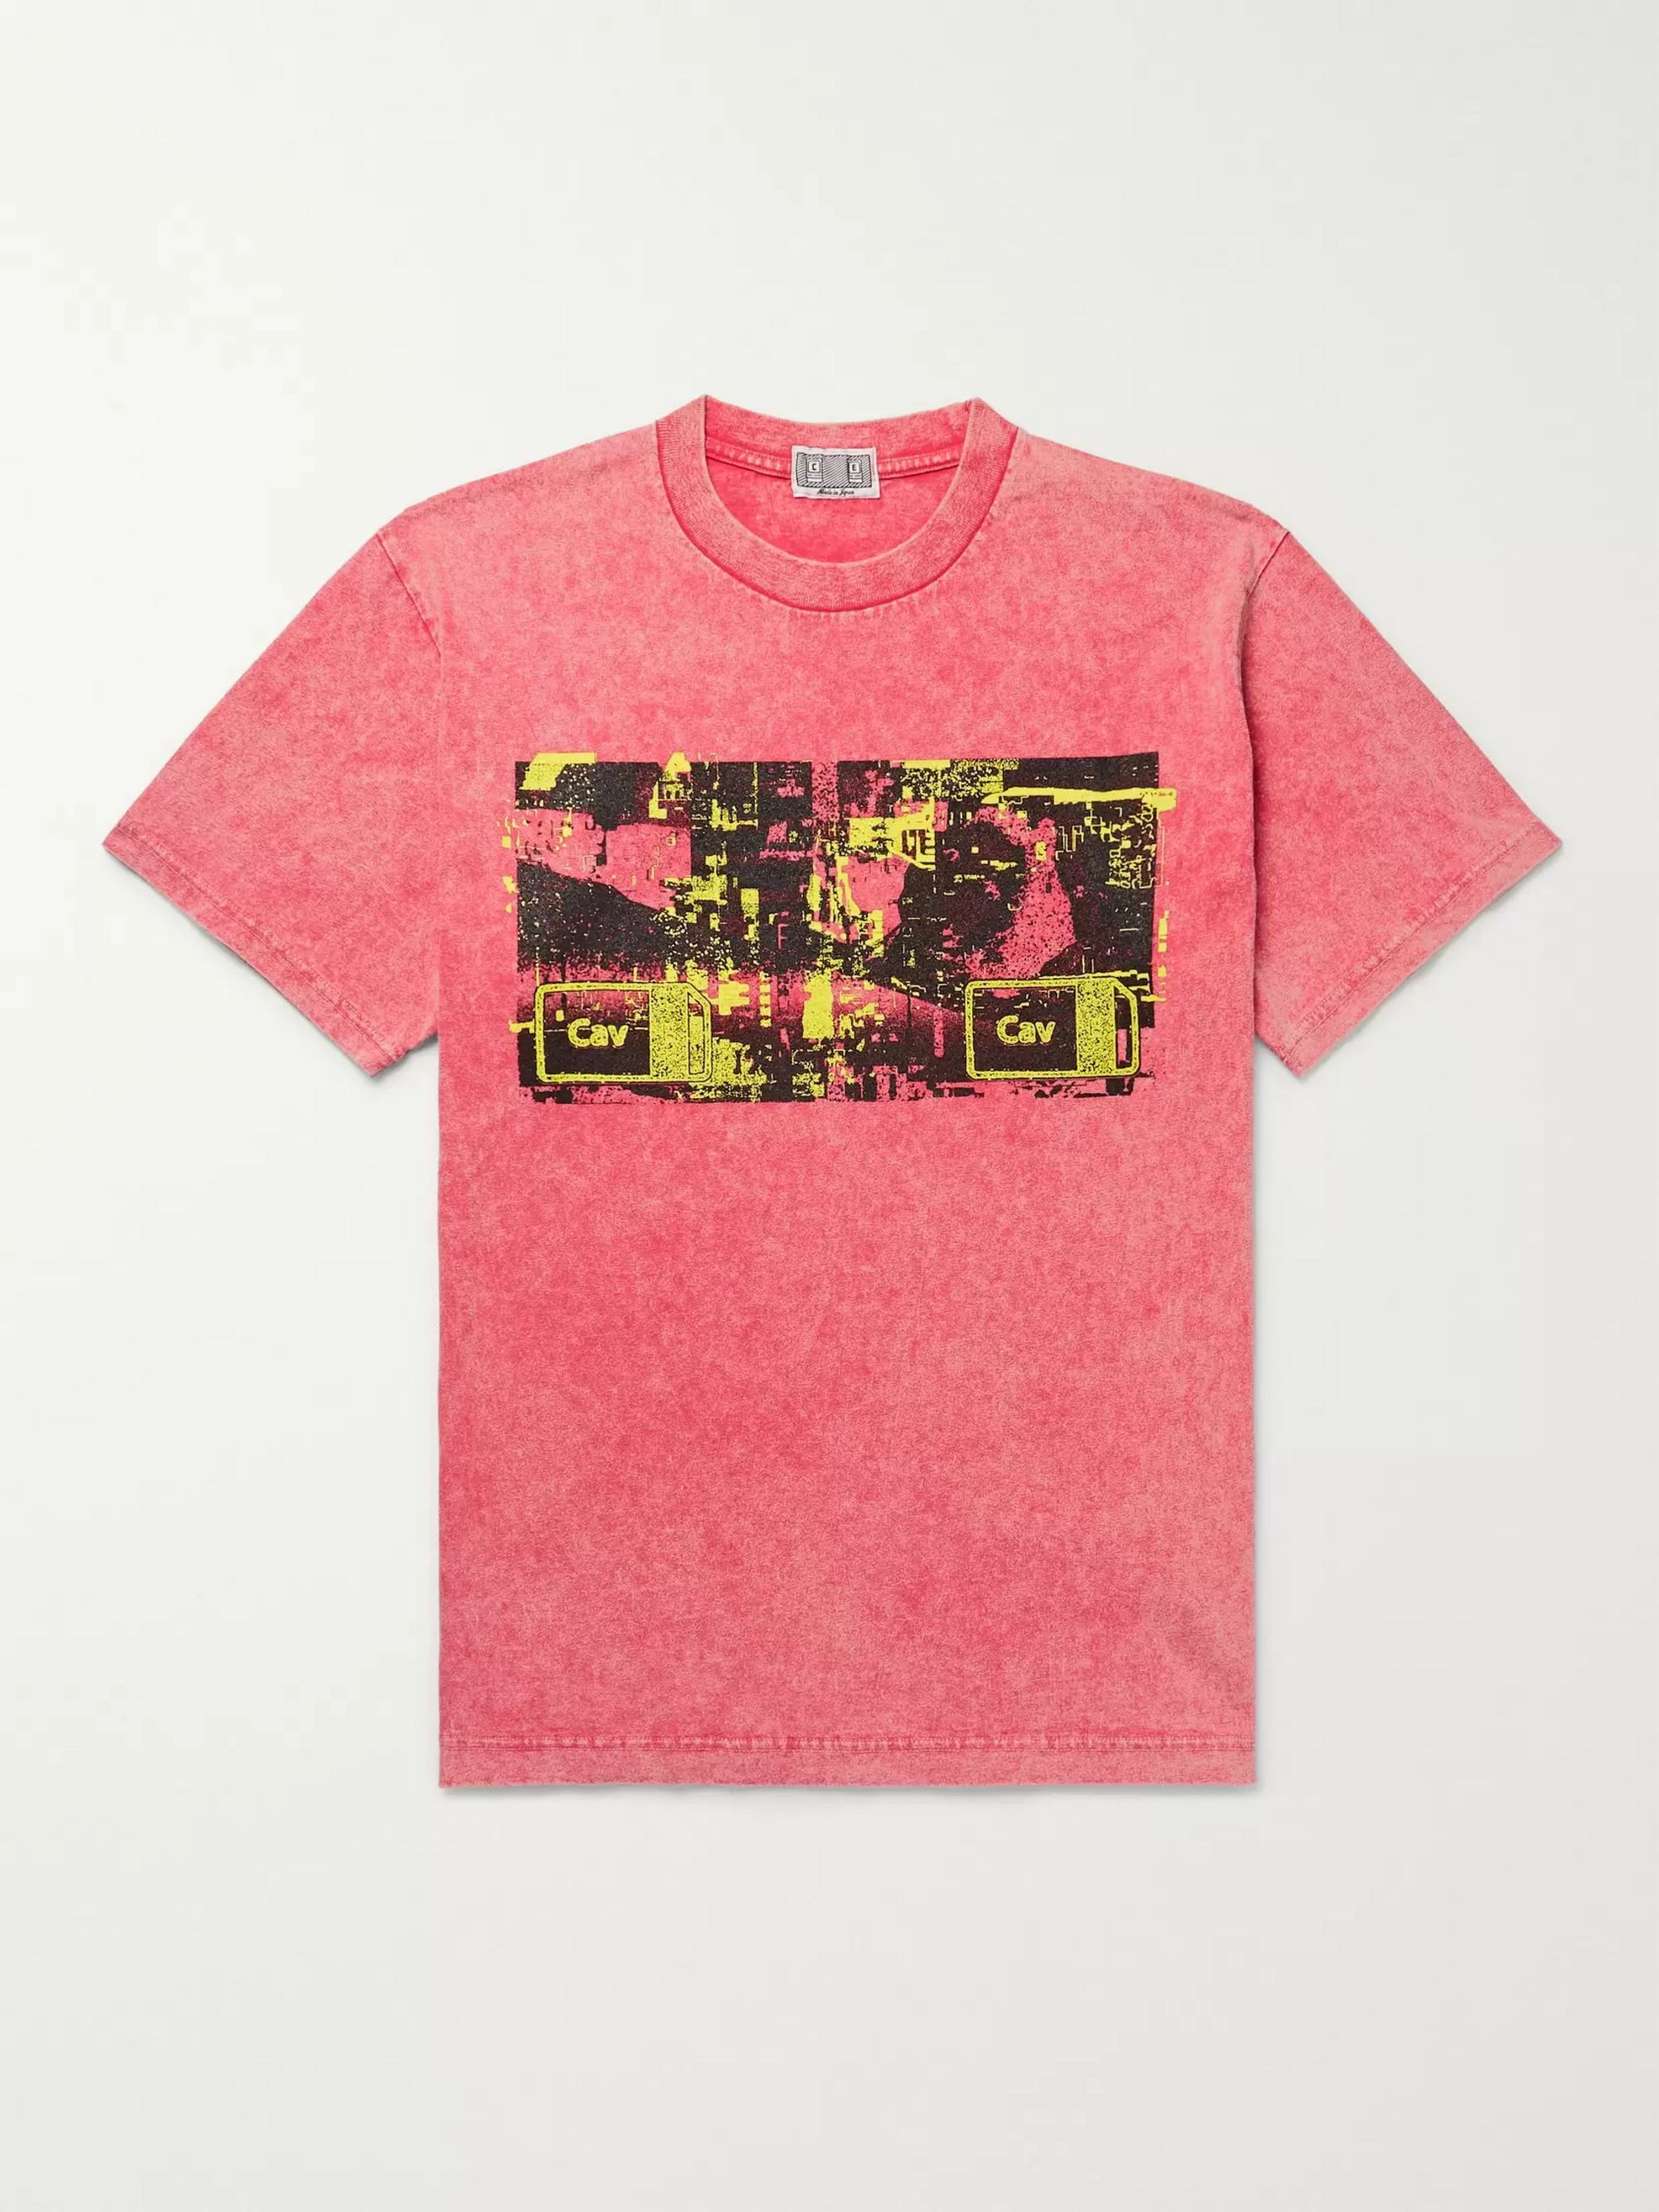 Cav Empt Acid-Washed Printed Cotton-Jersey T-Shirt